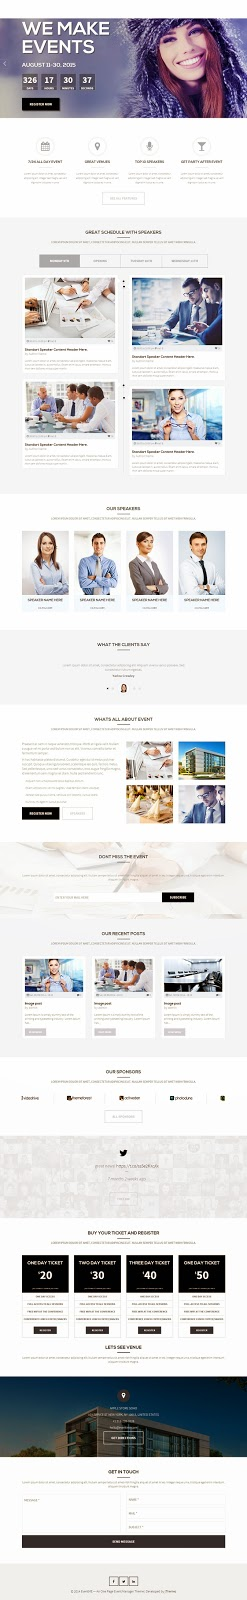 Premium Conference and Event Website Theme